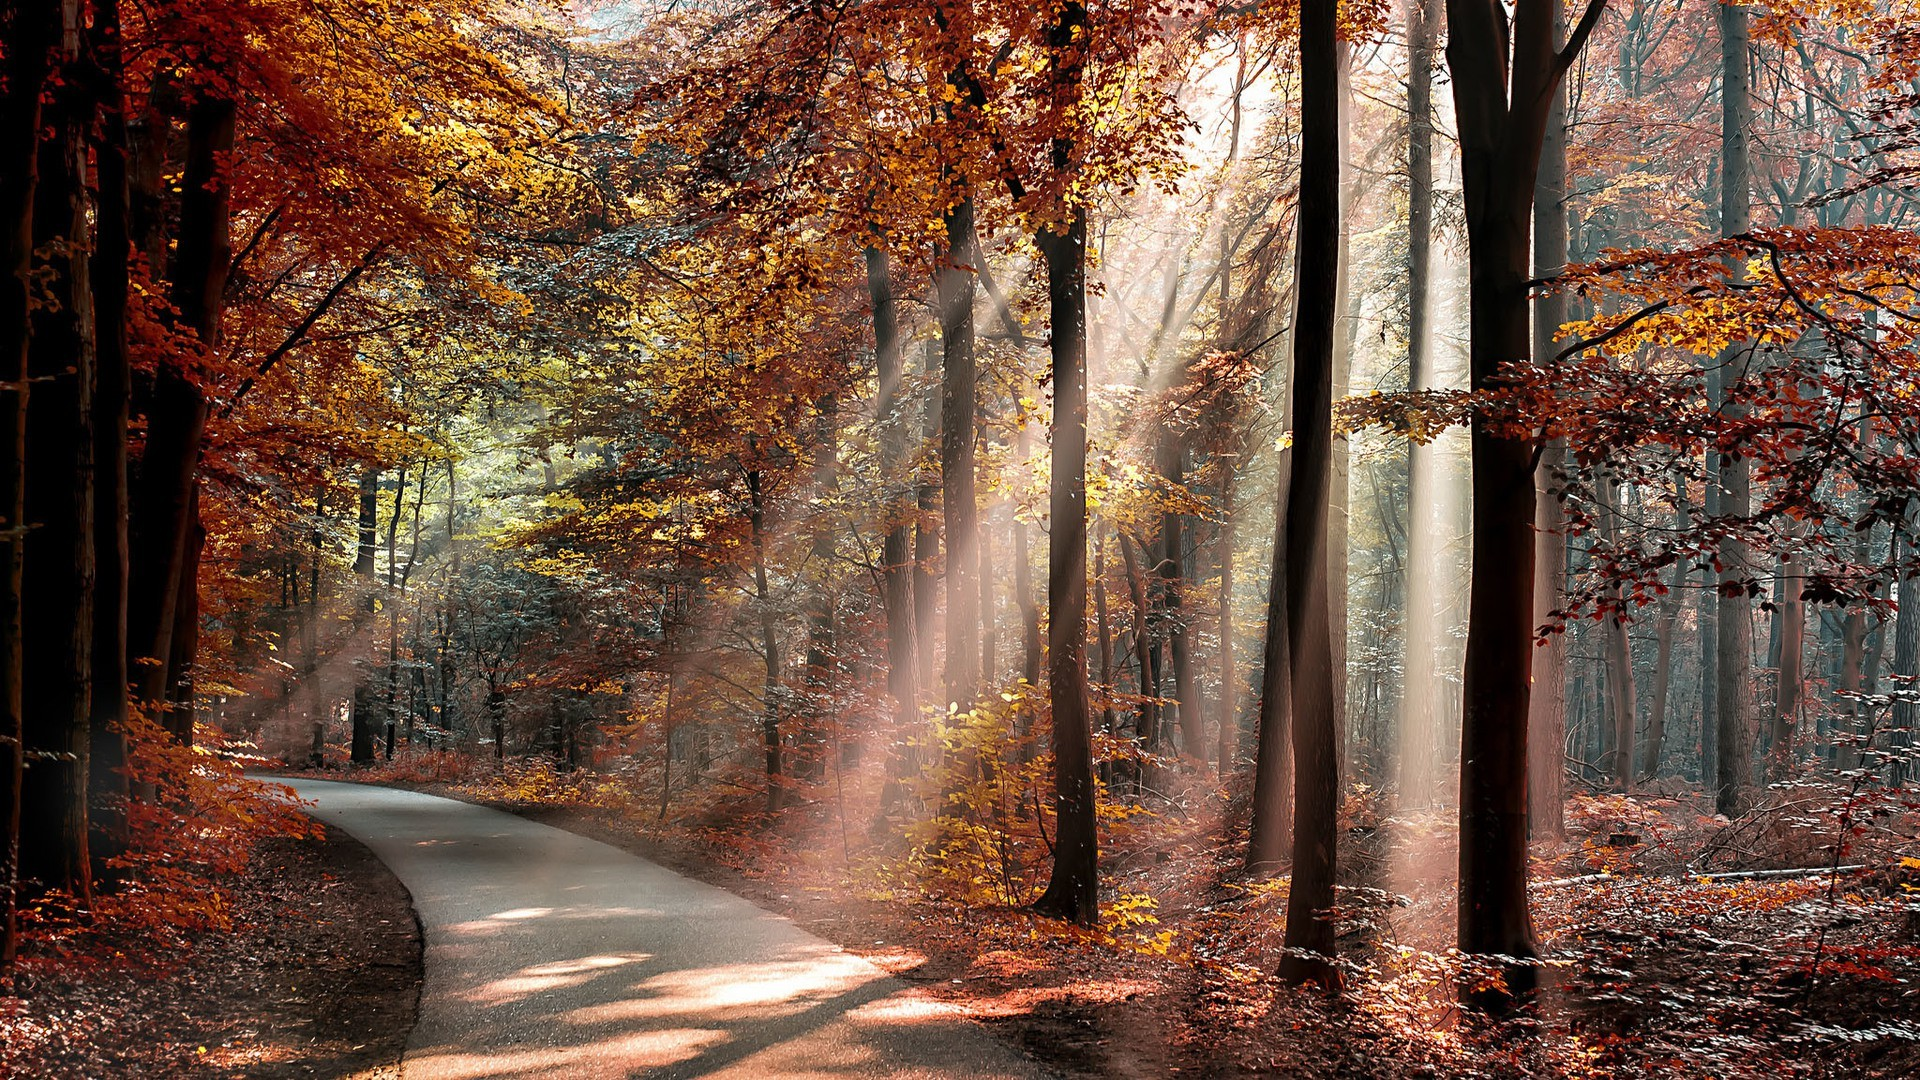 Full Screen Desktop Fall Leaves Wallpaper Nature Landscape Trees Forest Branch Sun Rays Road